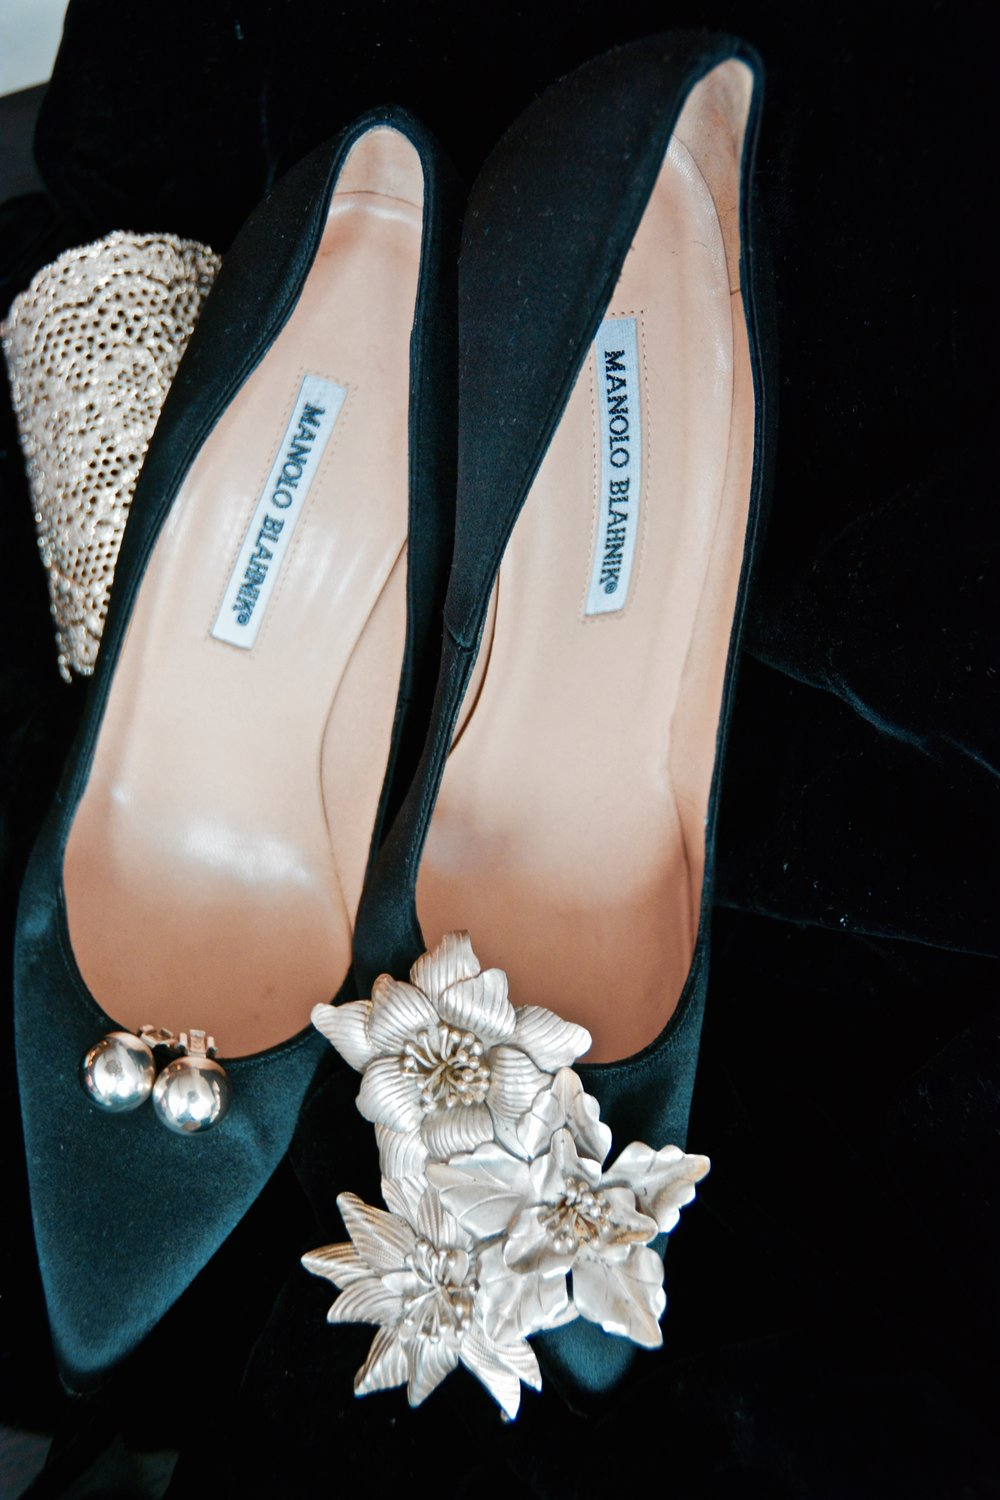 A pair of clip-on earrings adorns one shoe, while a silver brooch adorns the other.